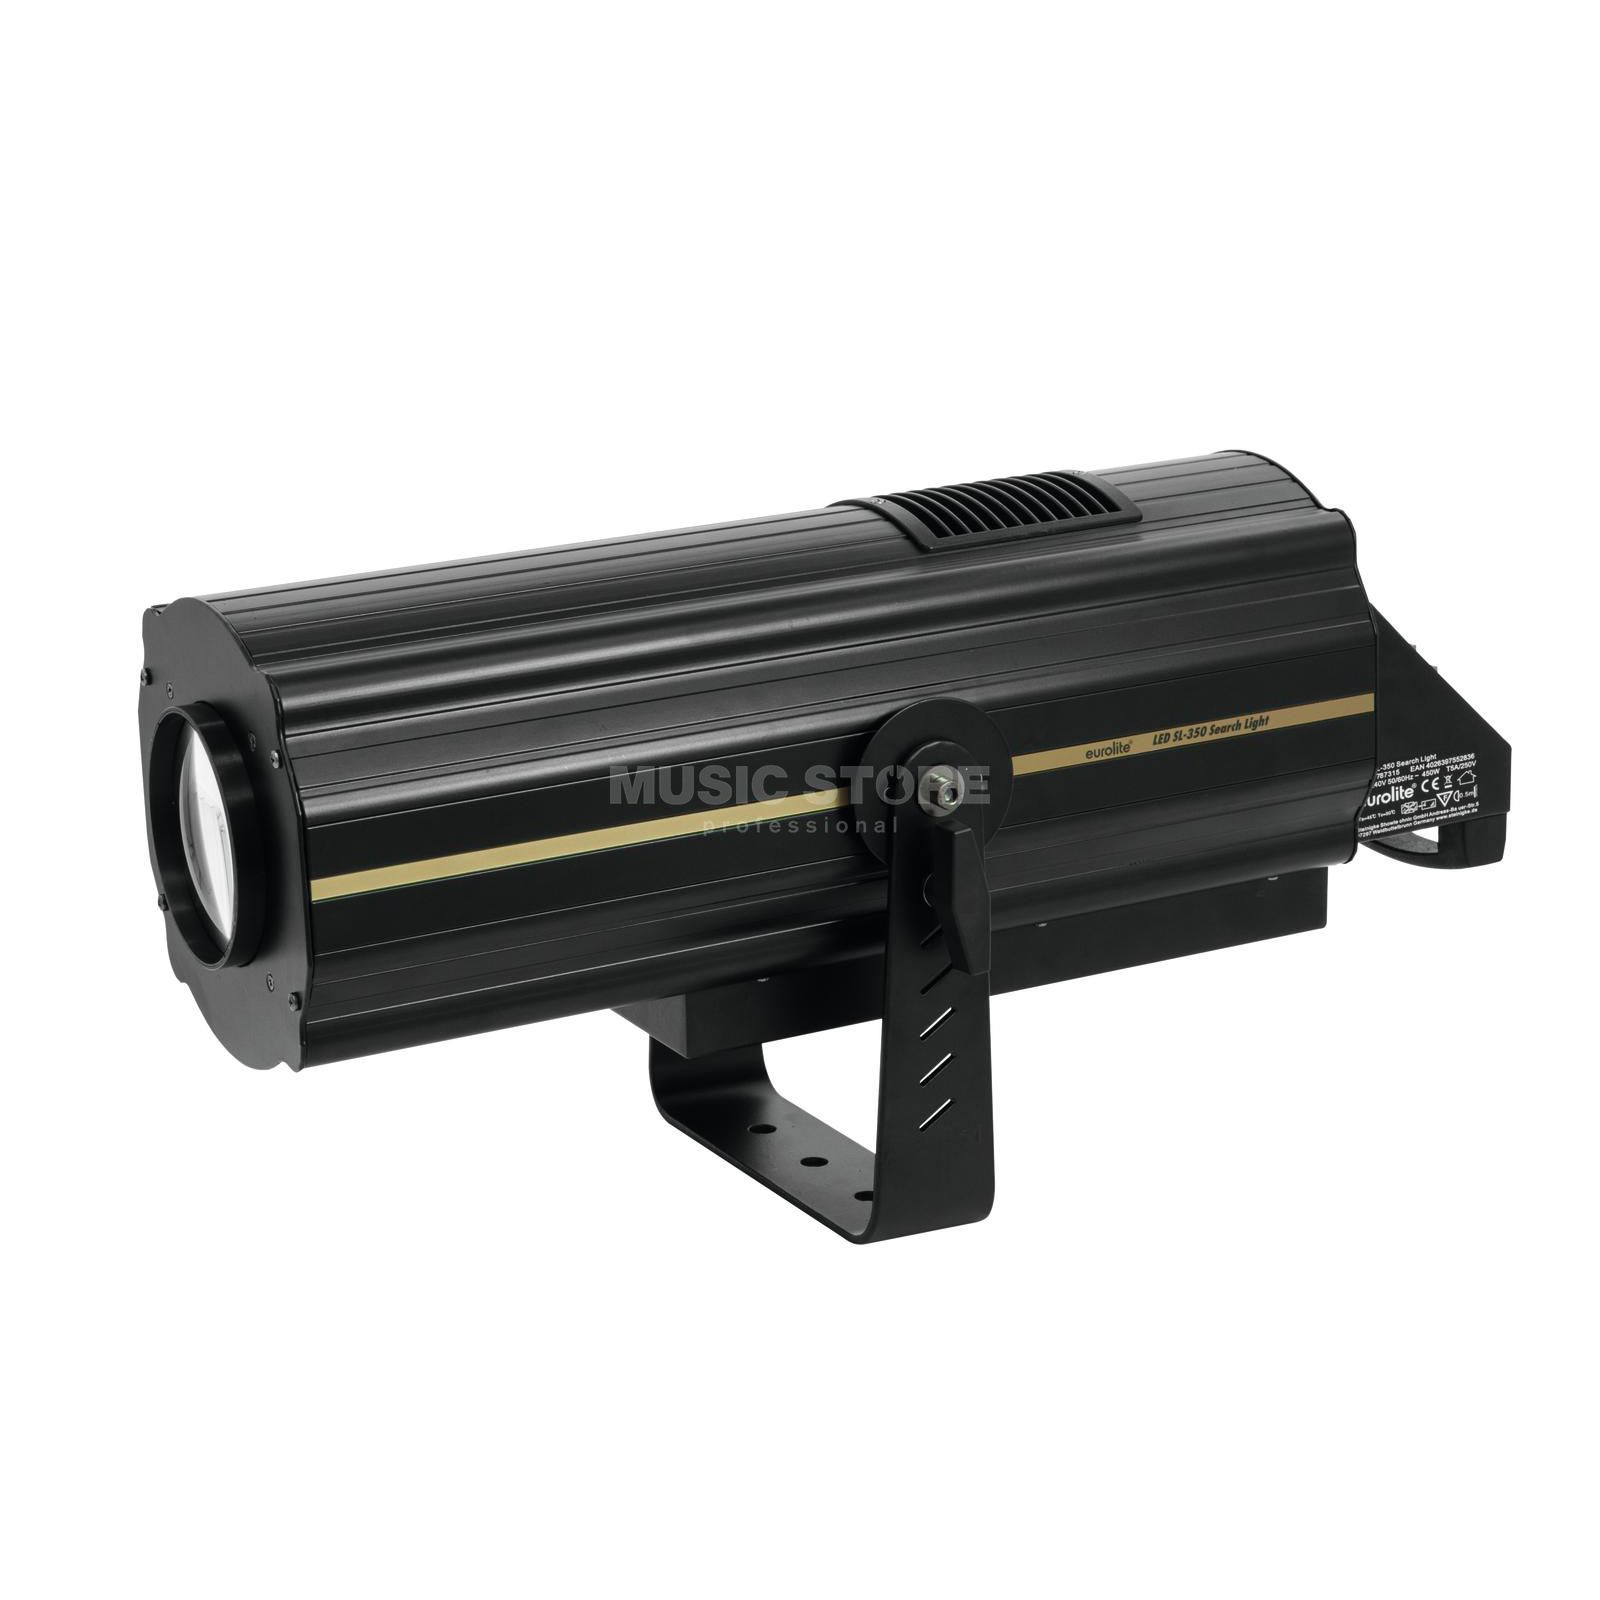 Eurolite LED SL-350 Search Light 350W LED Produktbild